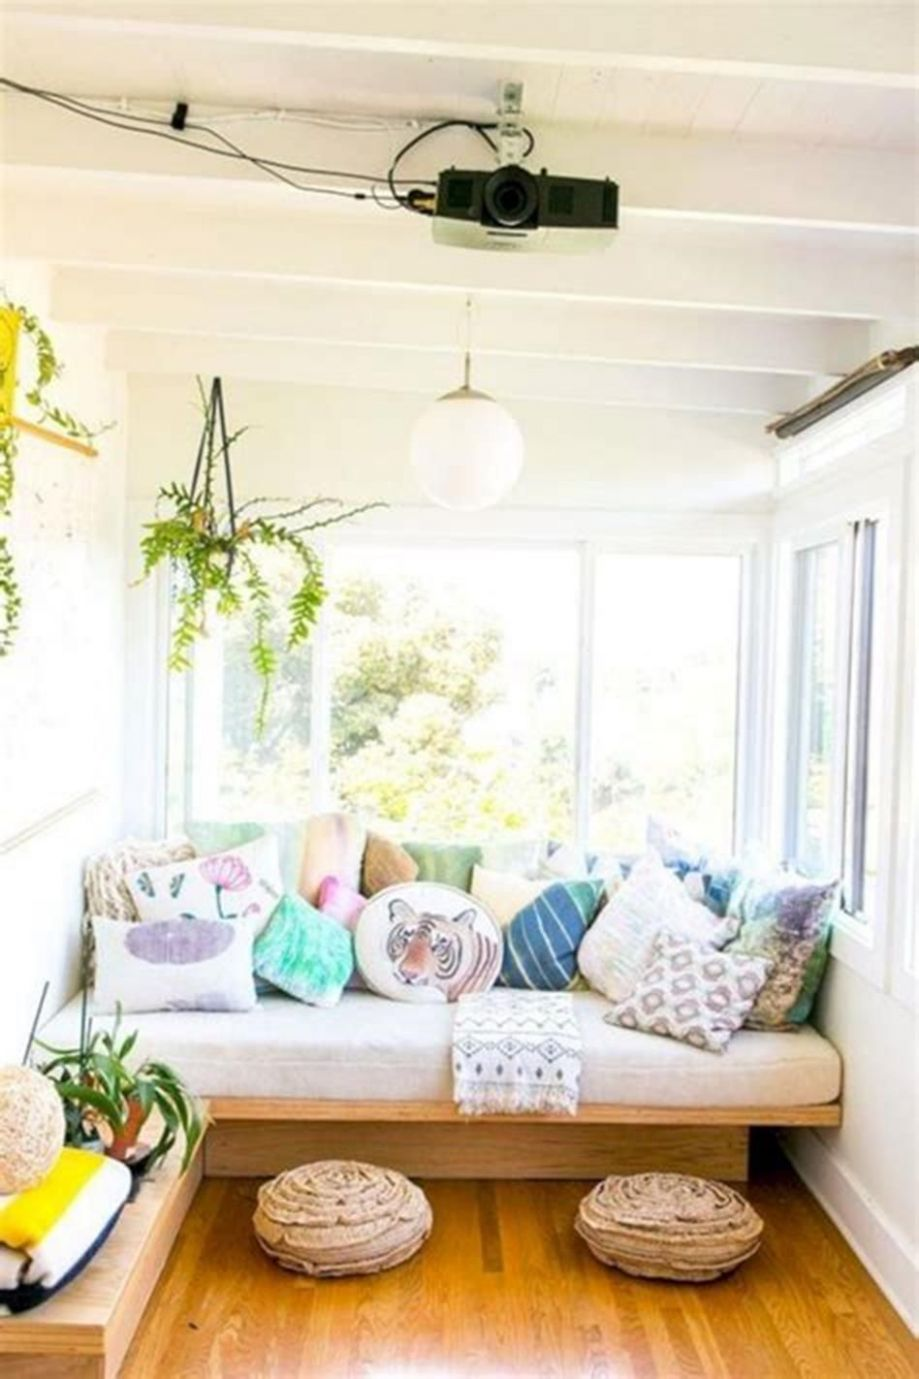 8 Most Popular Affordable Sunroom Design Ideas on a Budget ...